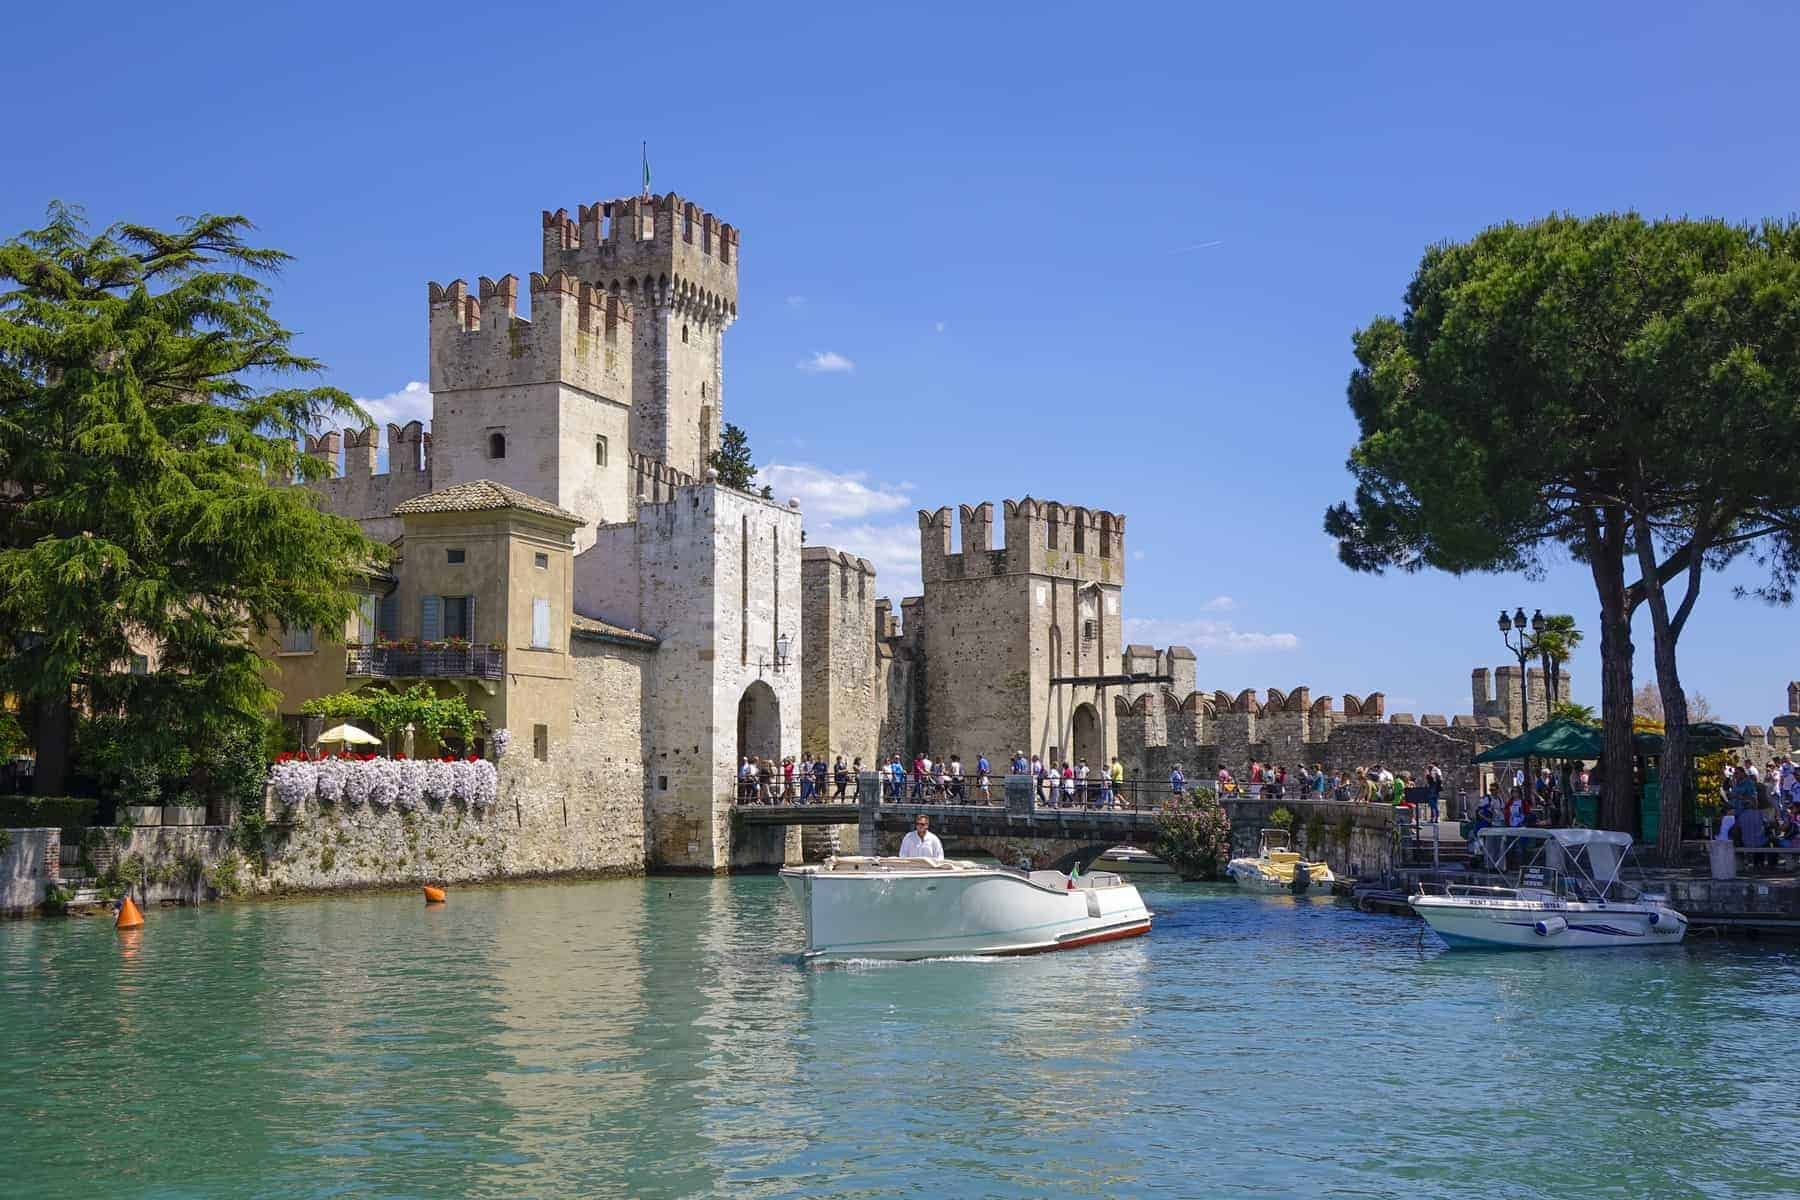 Castello Scaligero in Sirmione on Lake Garda, Lombardy, Italy, Europe